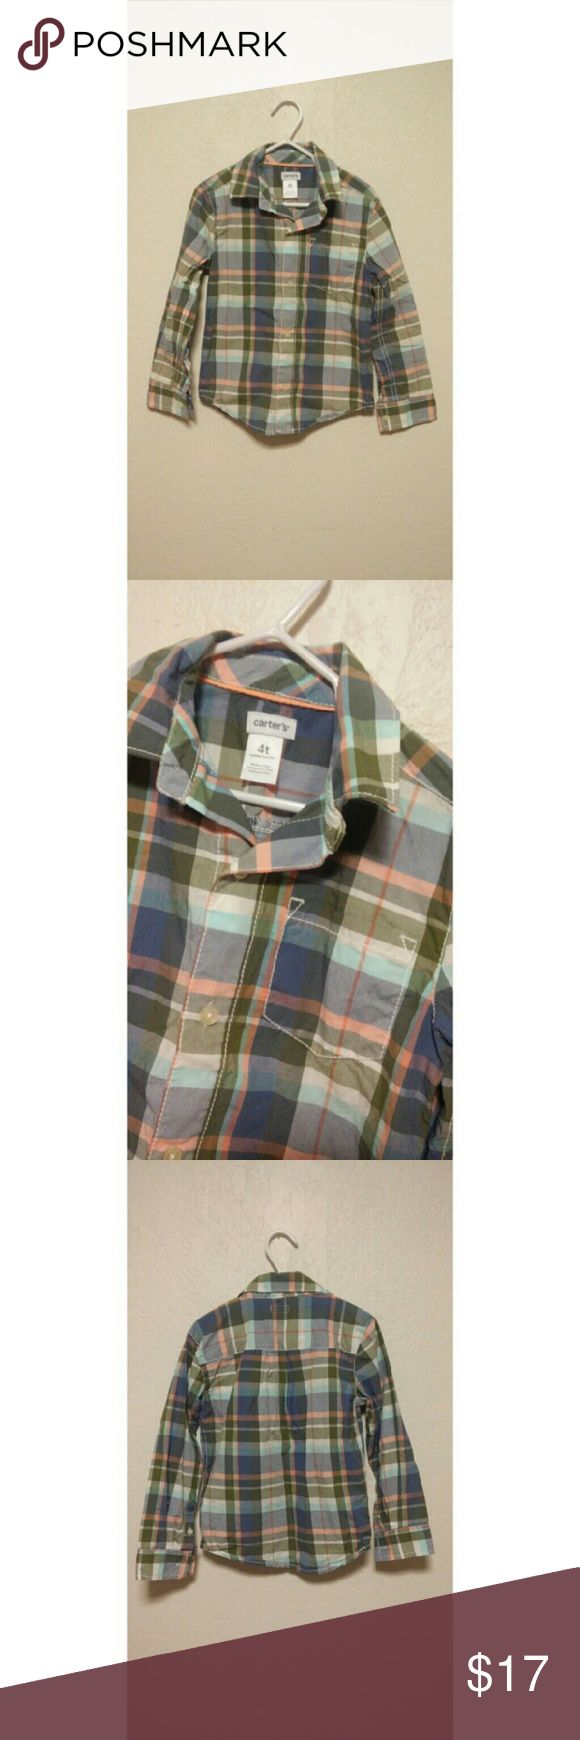 {Carter's} boy's pastel plaid button up size 4T Carter's  Pastel colors including green, blue, peach, sky blue and white. Boy's size 4T Front pocket   Worn one time for pictures, and has been sitting in closet ever since.   Such a cute shirt, I love it! Carter's Shirts & Tops Button Down Shirts